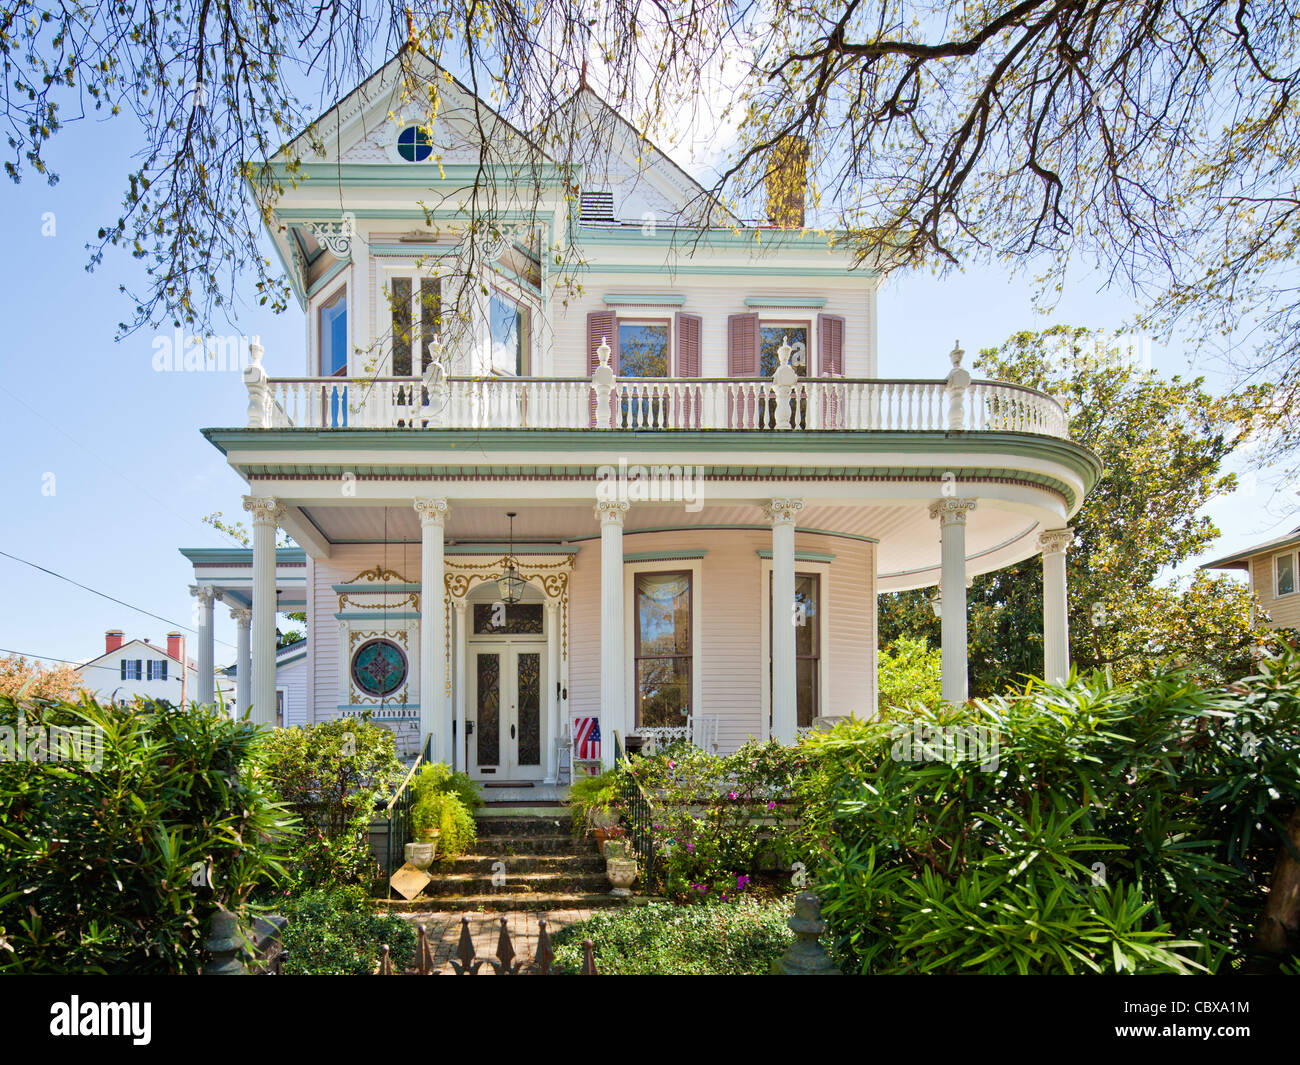 Victorian house garden district new orleans stock photo royalty free image 41760592 alamy for Douglas gardens community mental health center